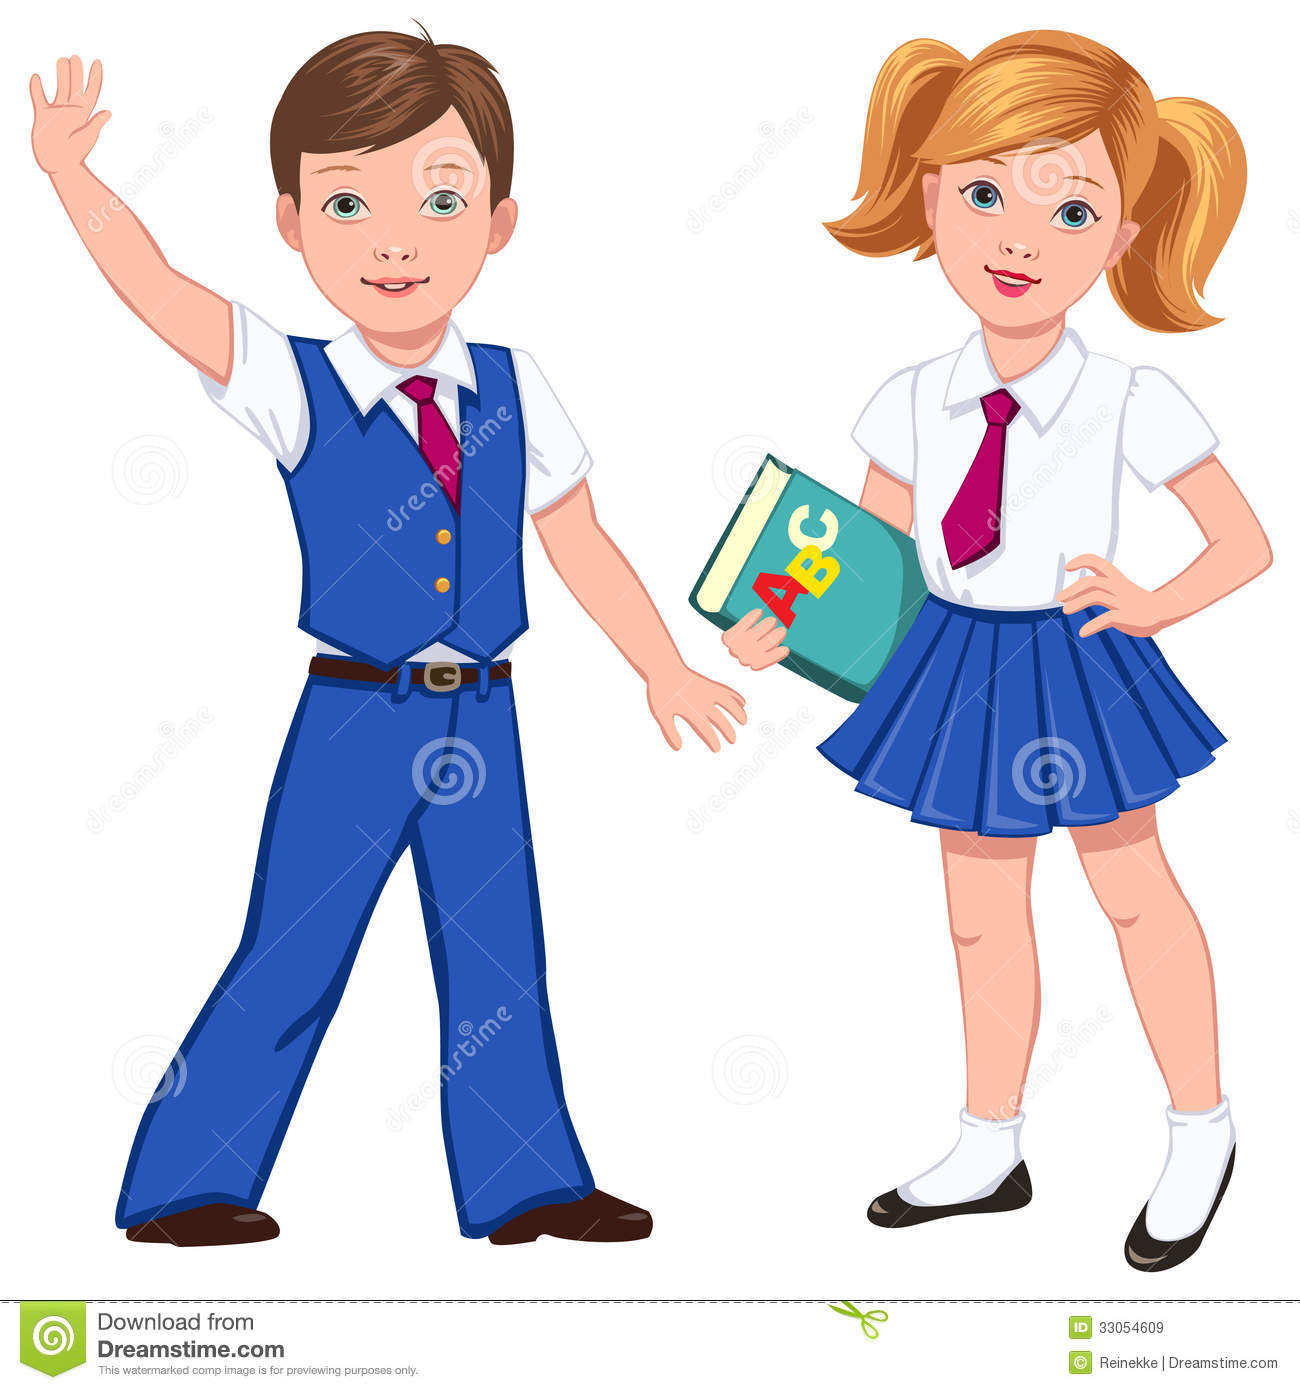 Uniform pictures Girl clipart collection